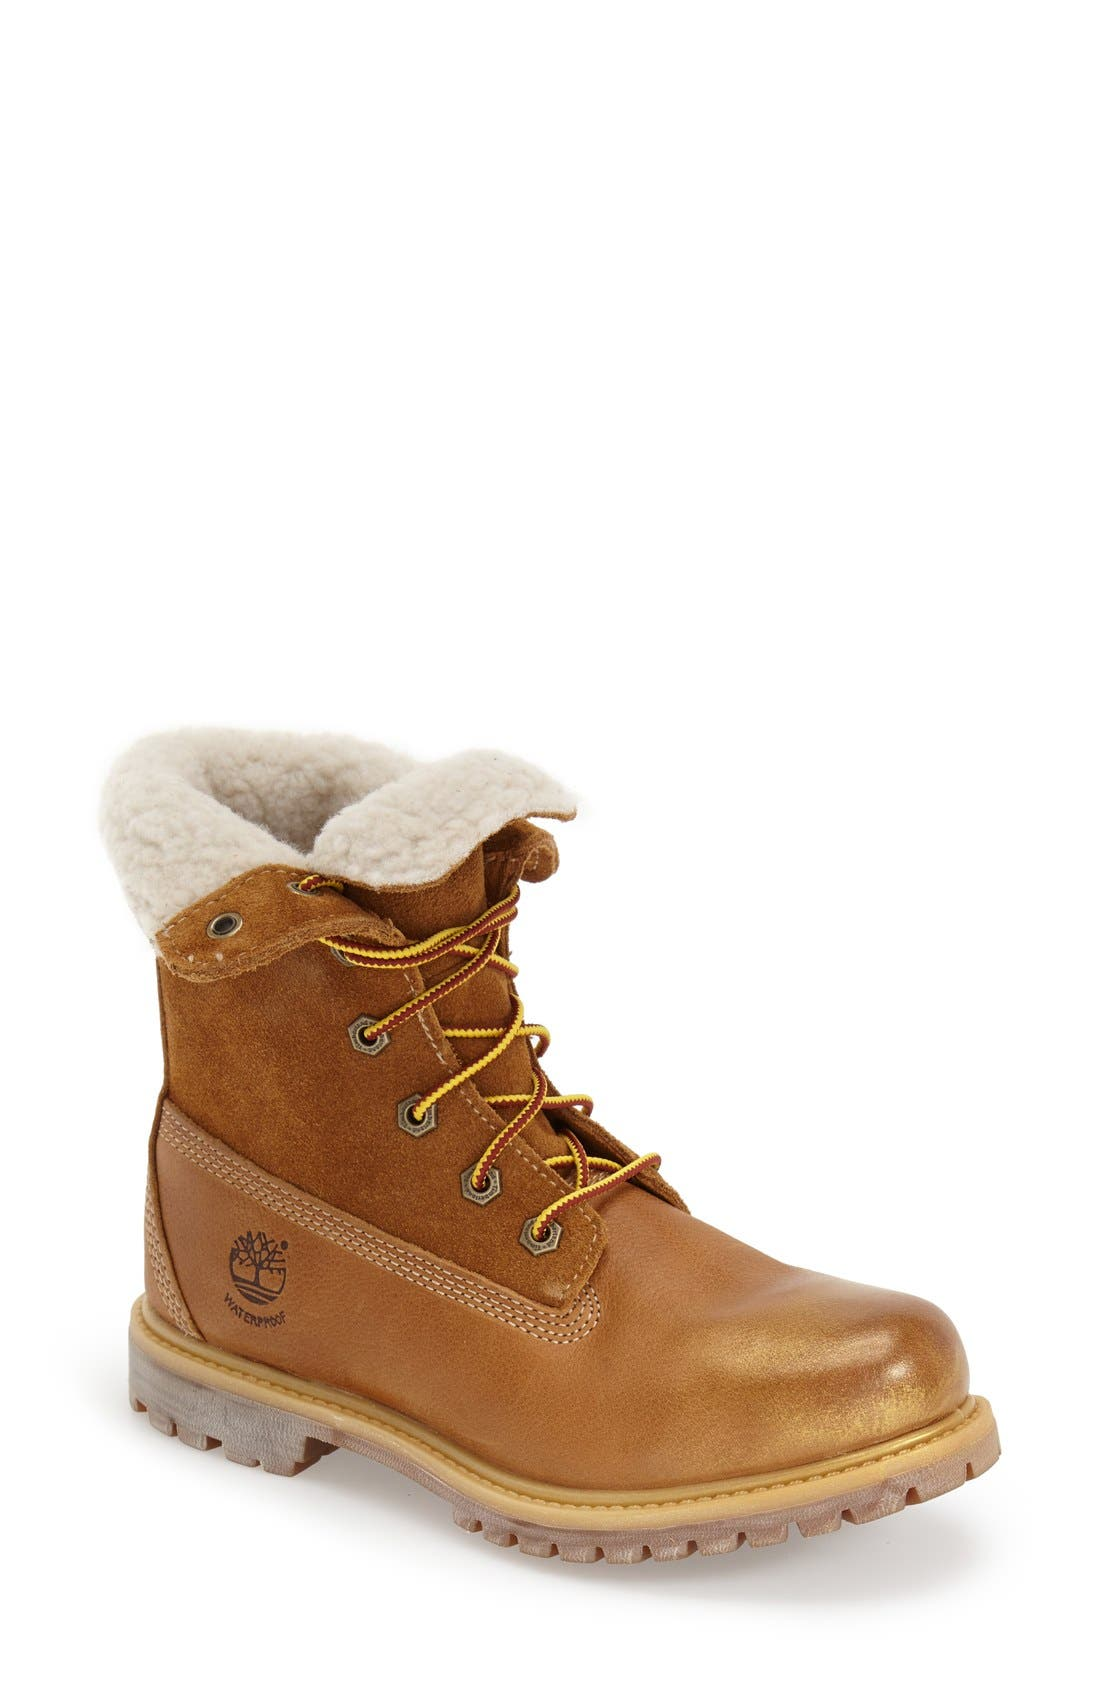 Alternate Image 1 Selected - Timberland Waterproof Foldover Bootie (Women)